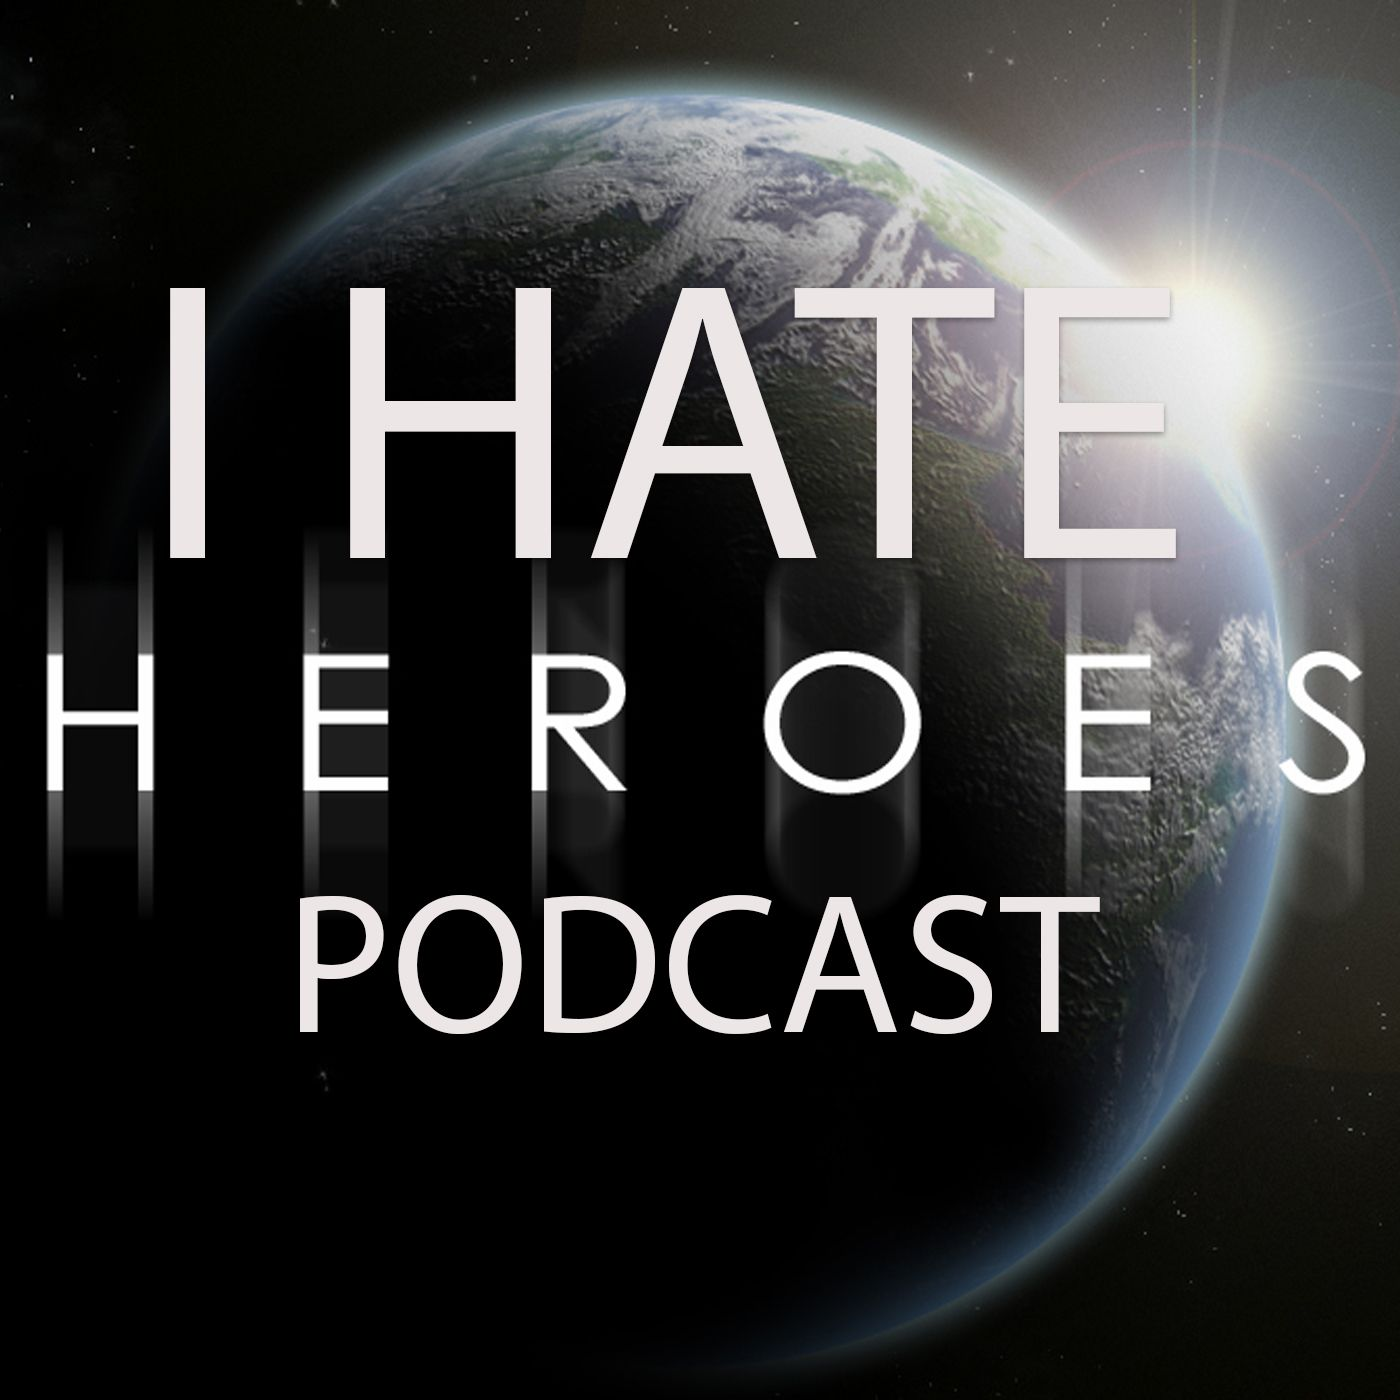 I HATE HEROES PODCAST